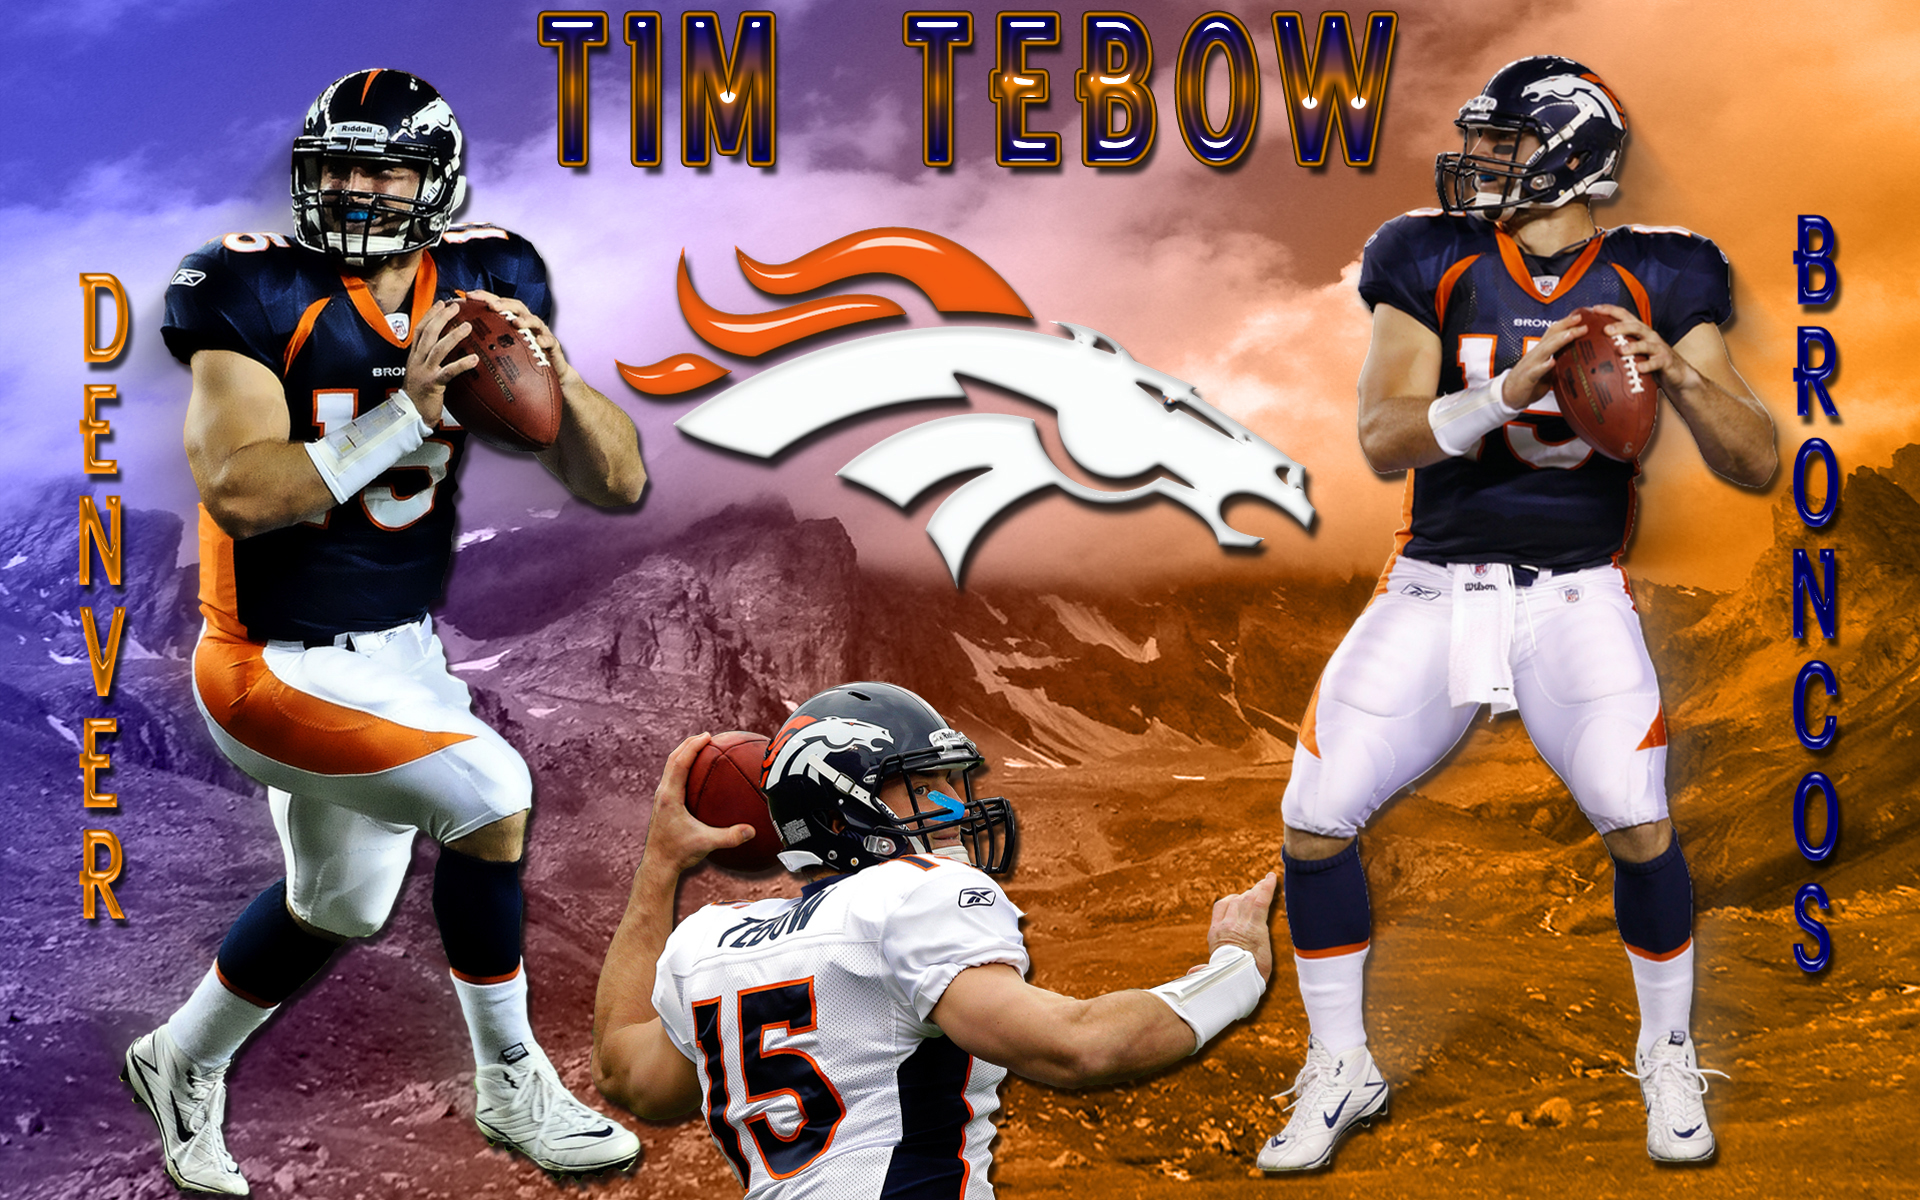 Wallpapers By Wicked Shadows Tim Tebow Denver Broncos Wallpaper 1920x1200